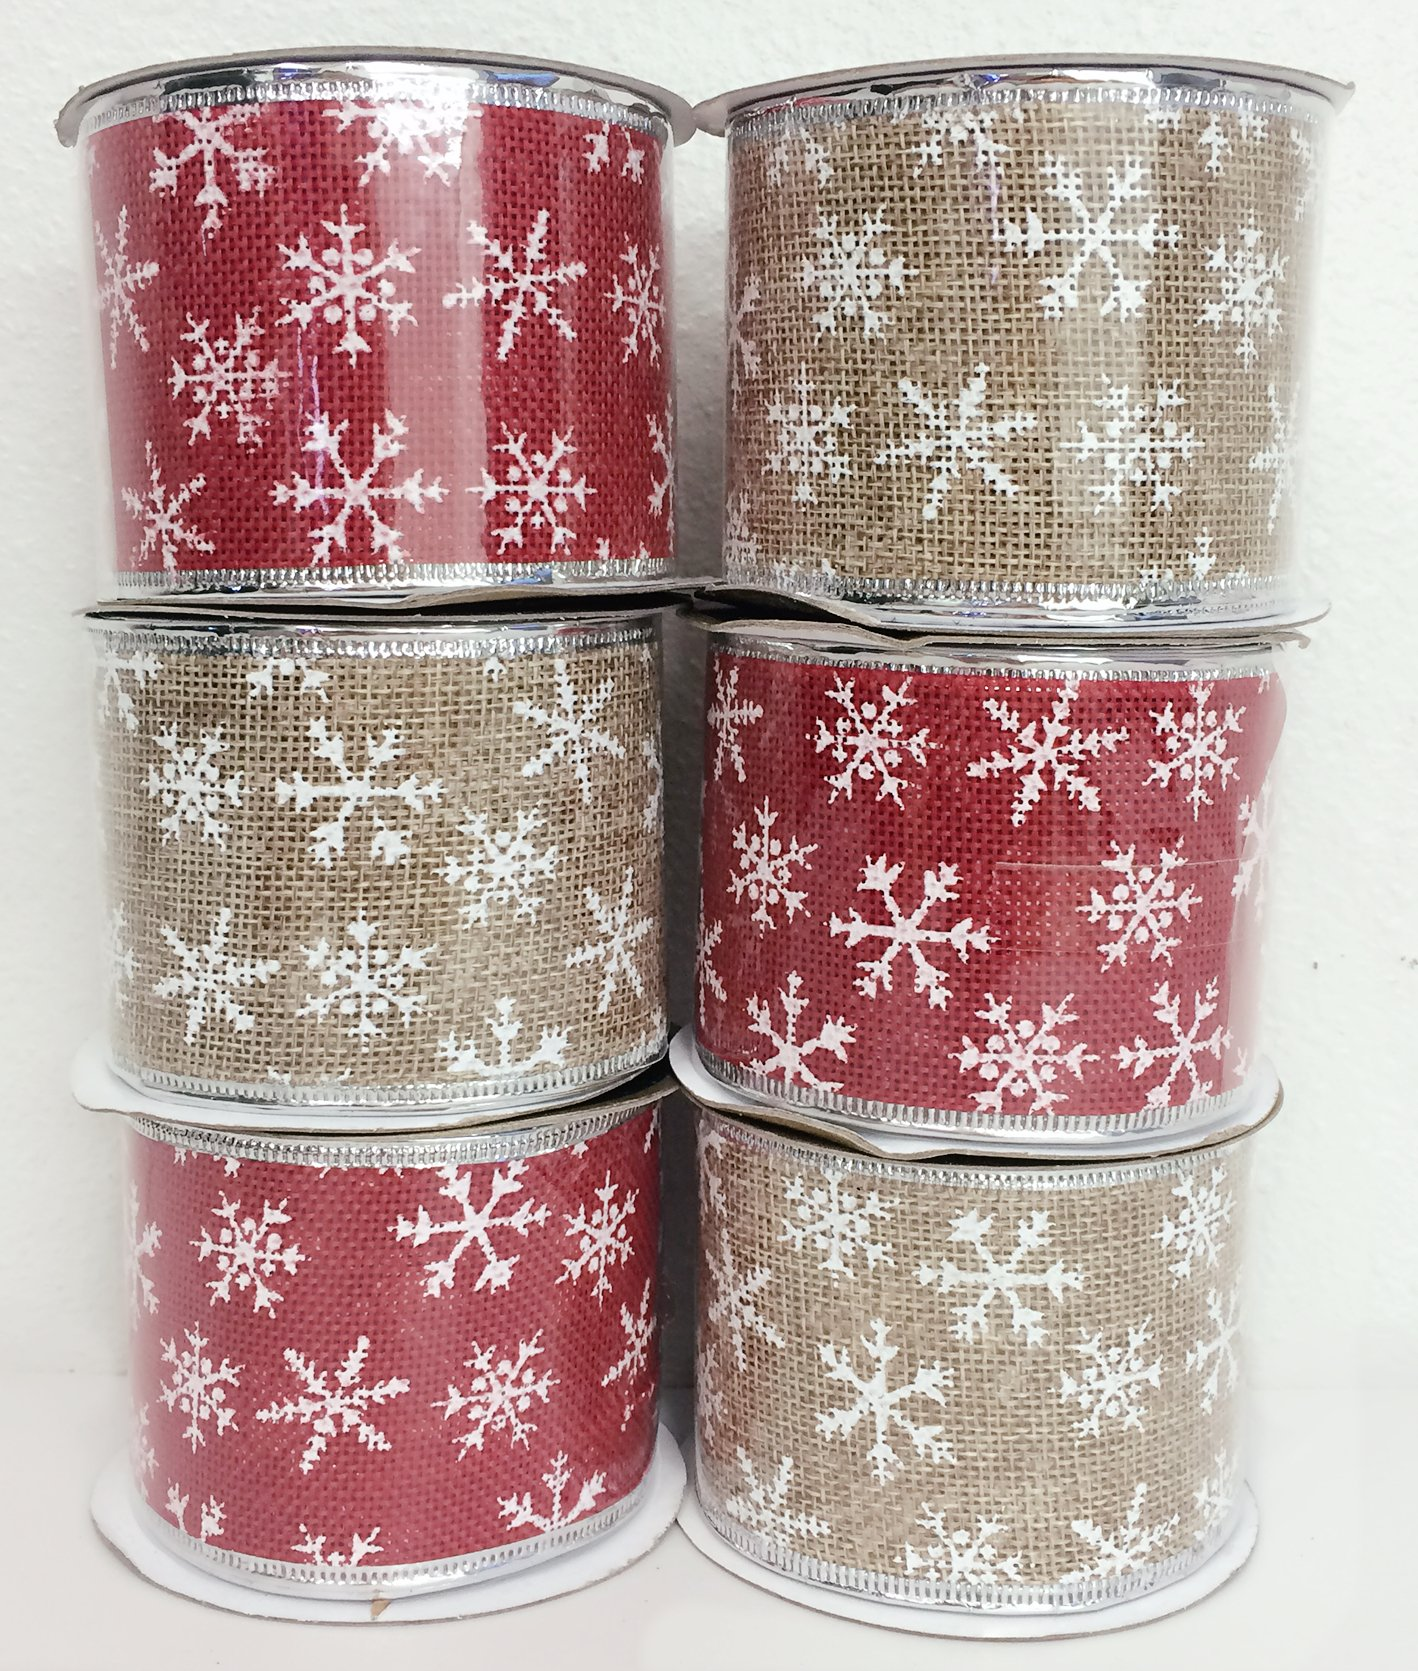 4 Rolls Assorted Patterns Classic Christmas Decorations Ribbons (2.5''W x 9FT Each) - Red/Khaki